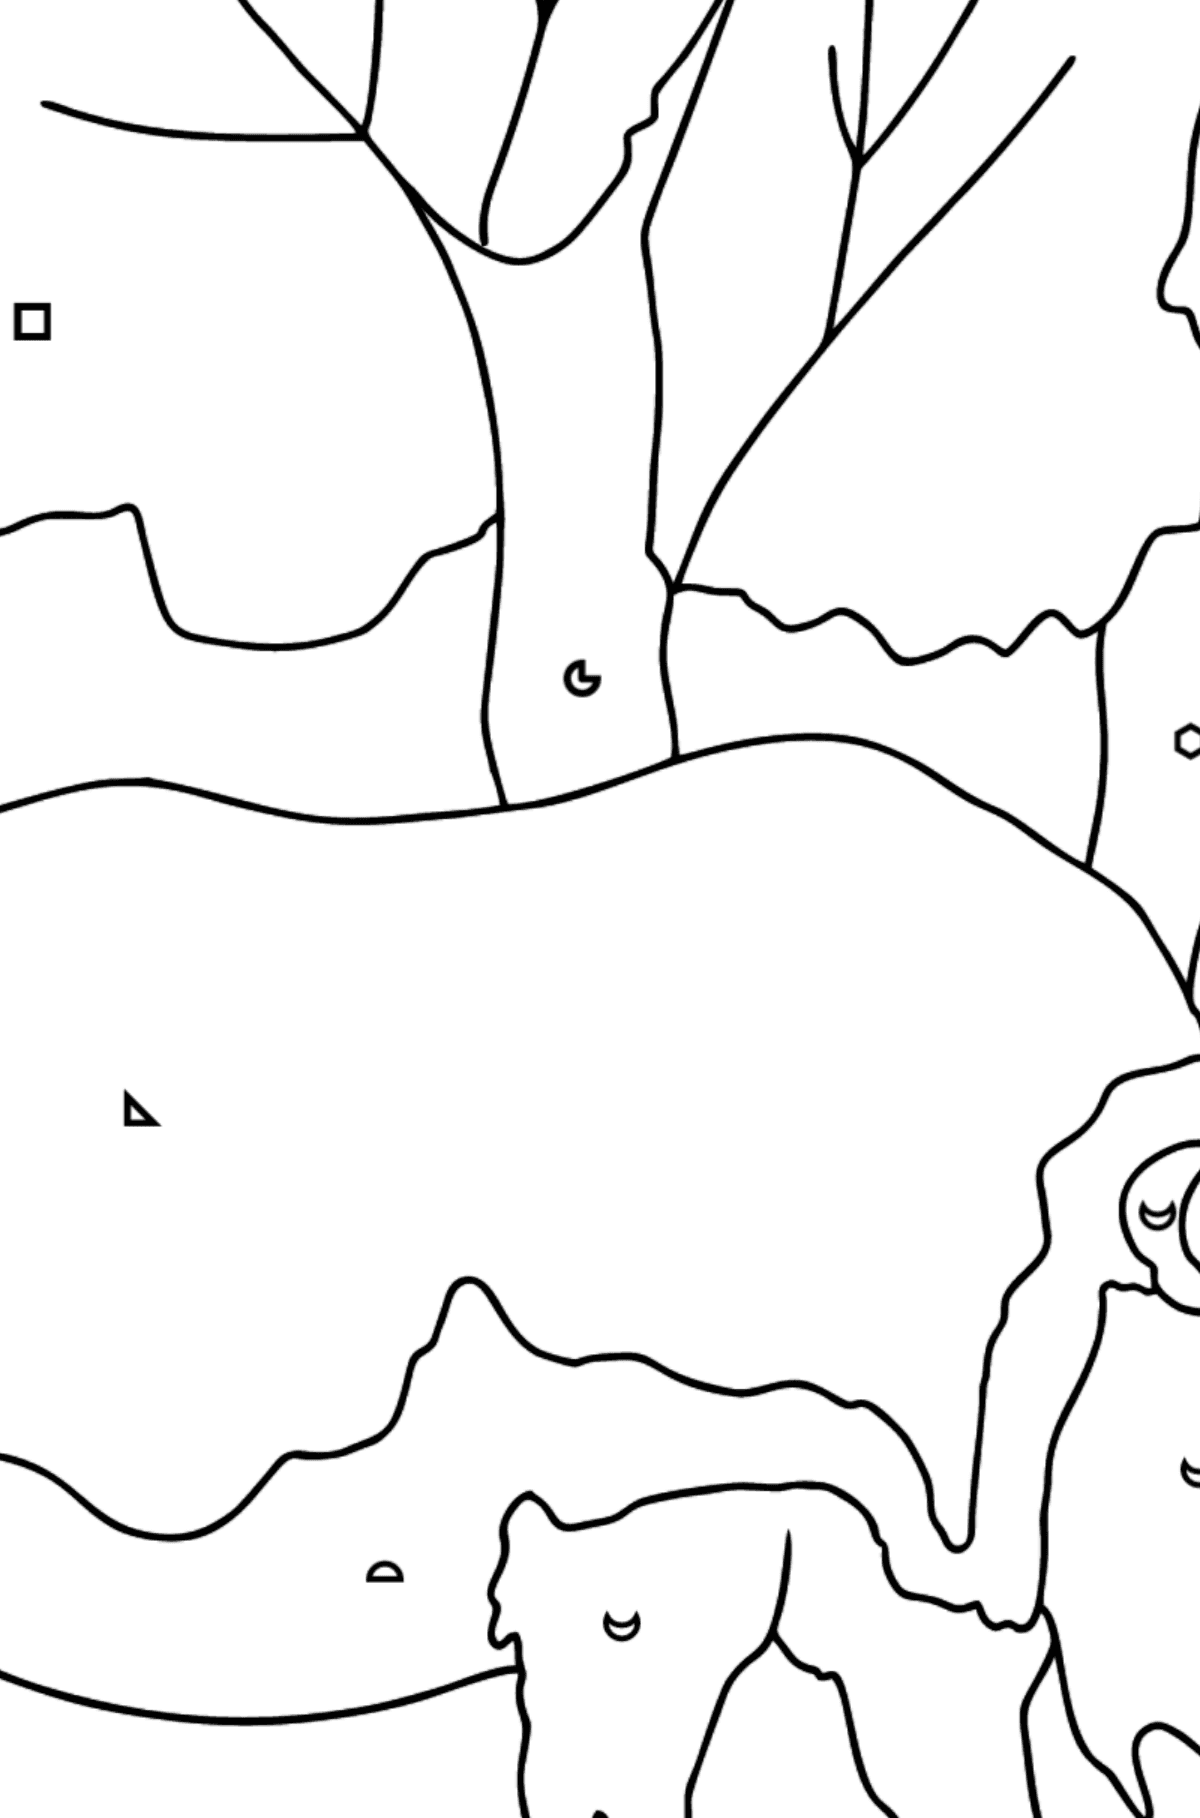 Coloring Page - A Massive Rhino - Coloring by Geometric Shapes for Kids